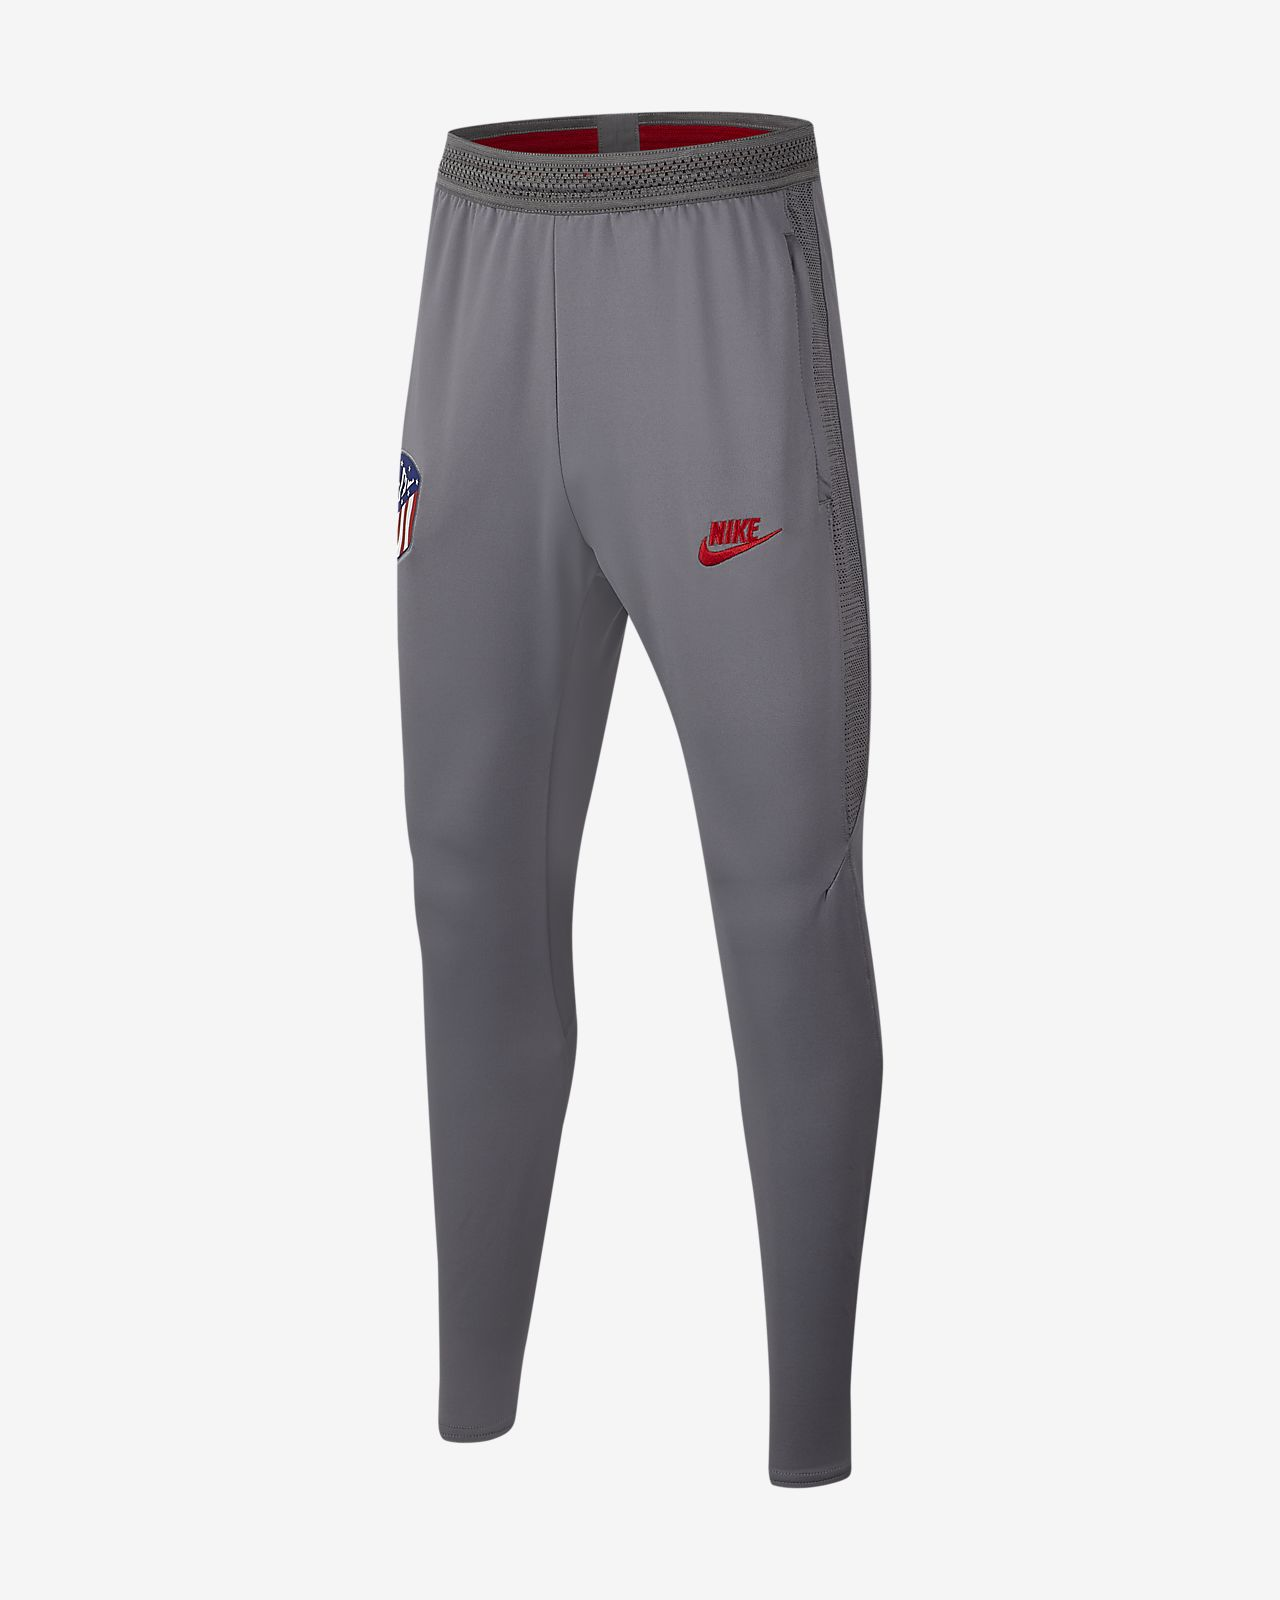 Pantalon de football Nike Dri-FIT Atlético de Madrid Strike pour Enfant plus âgé